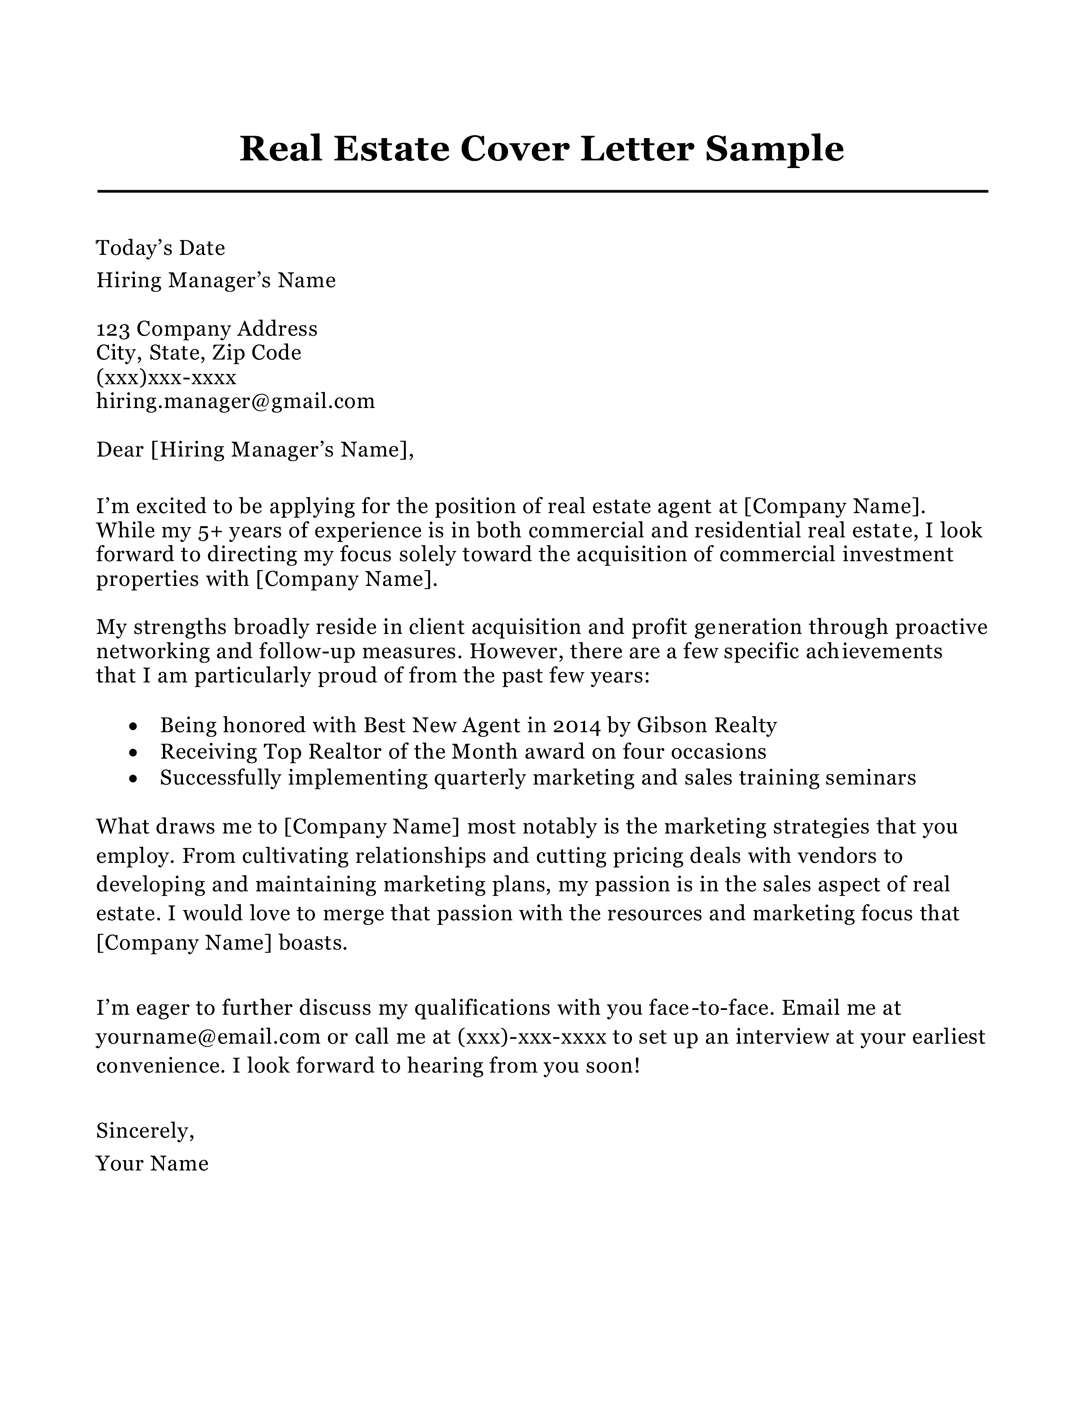 Real estate agent cover letter sample